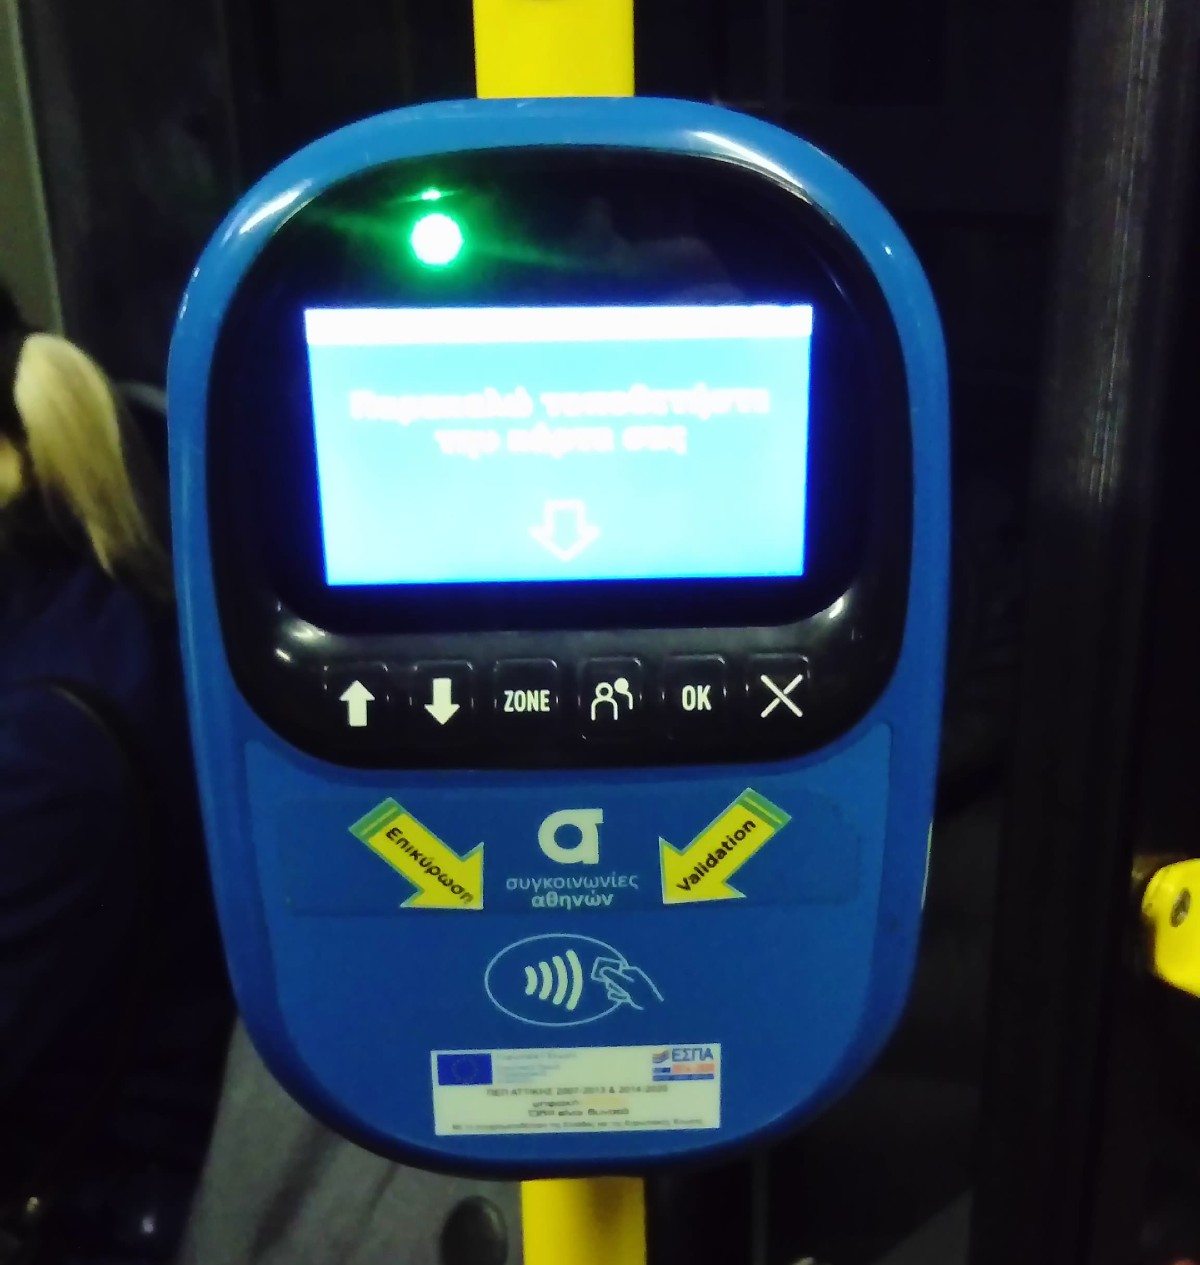 Ticket scanner on the Athens airport shuttle bus